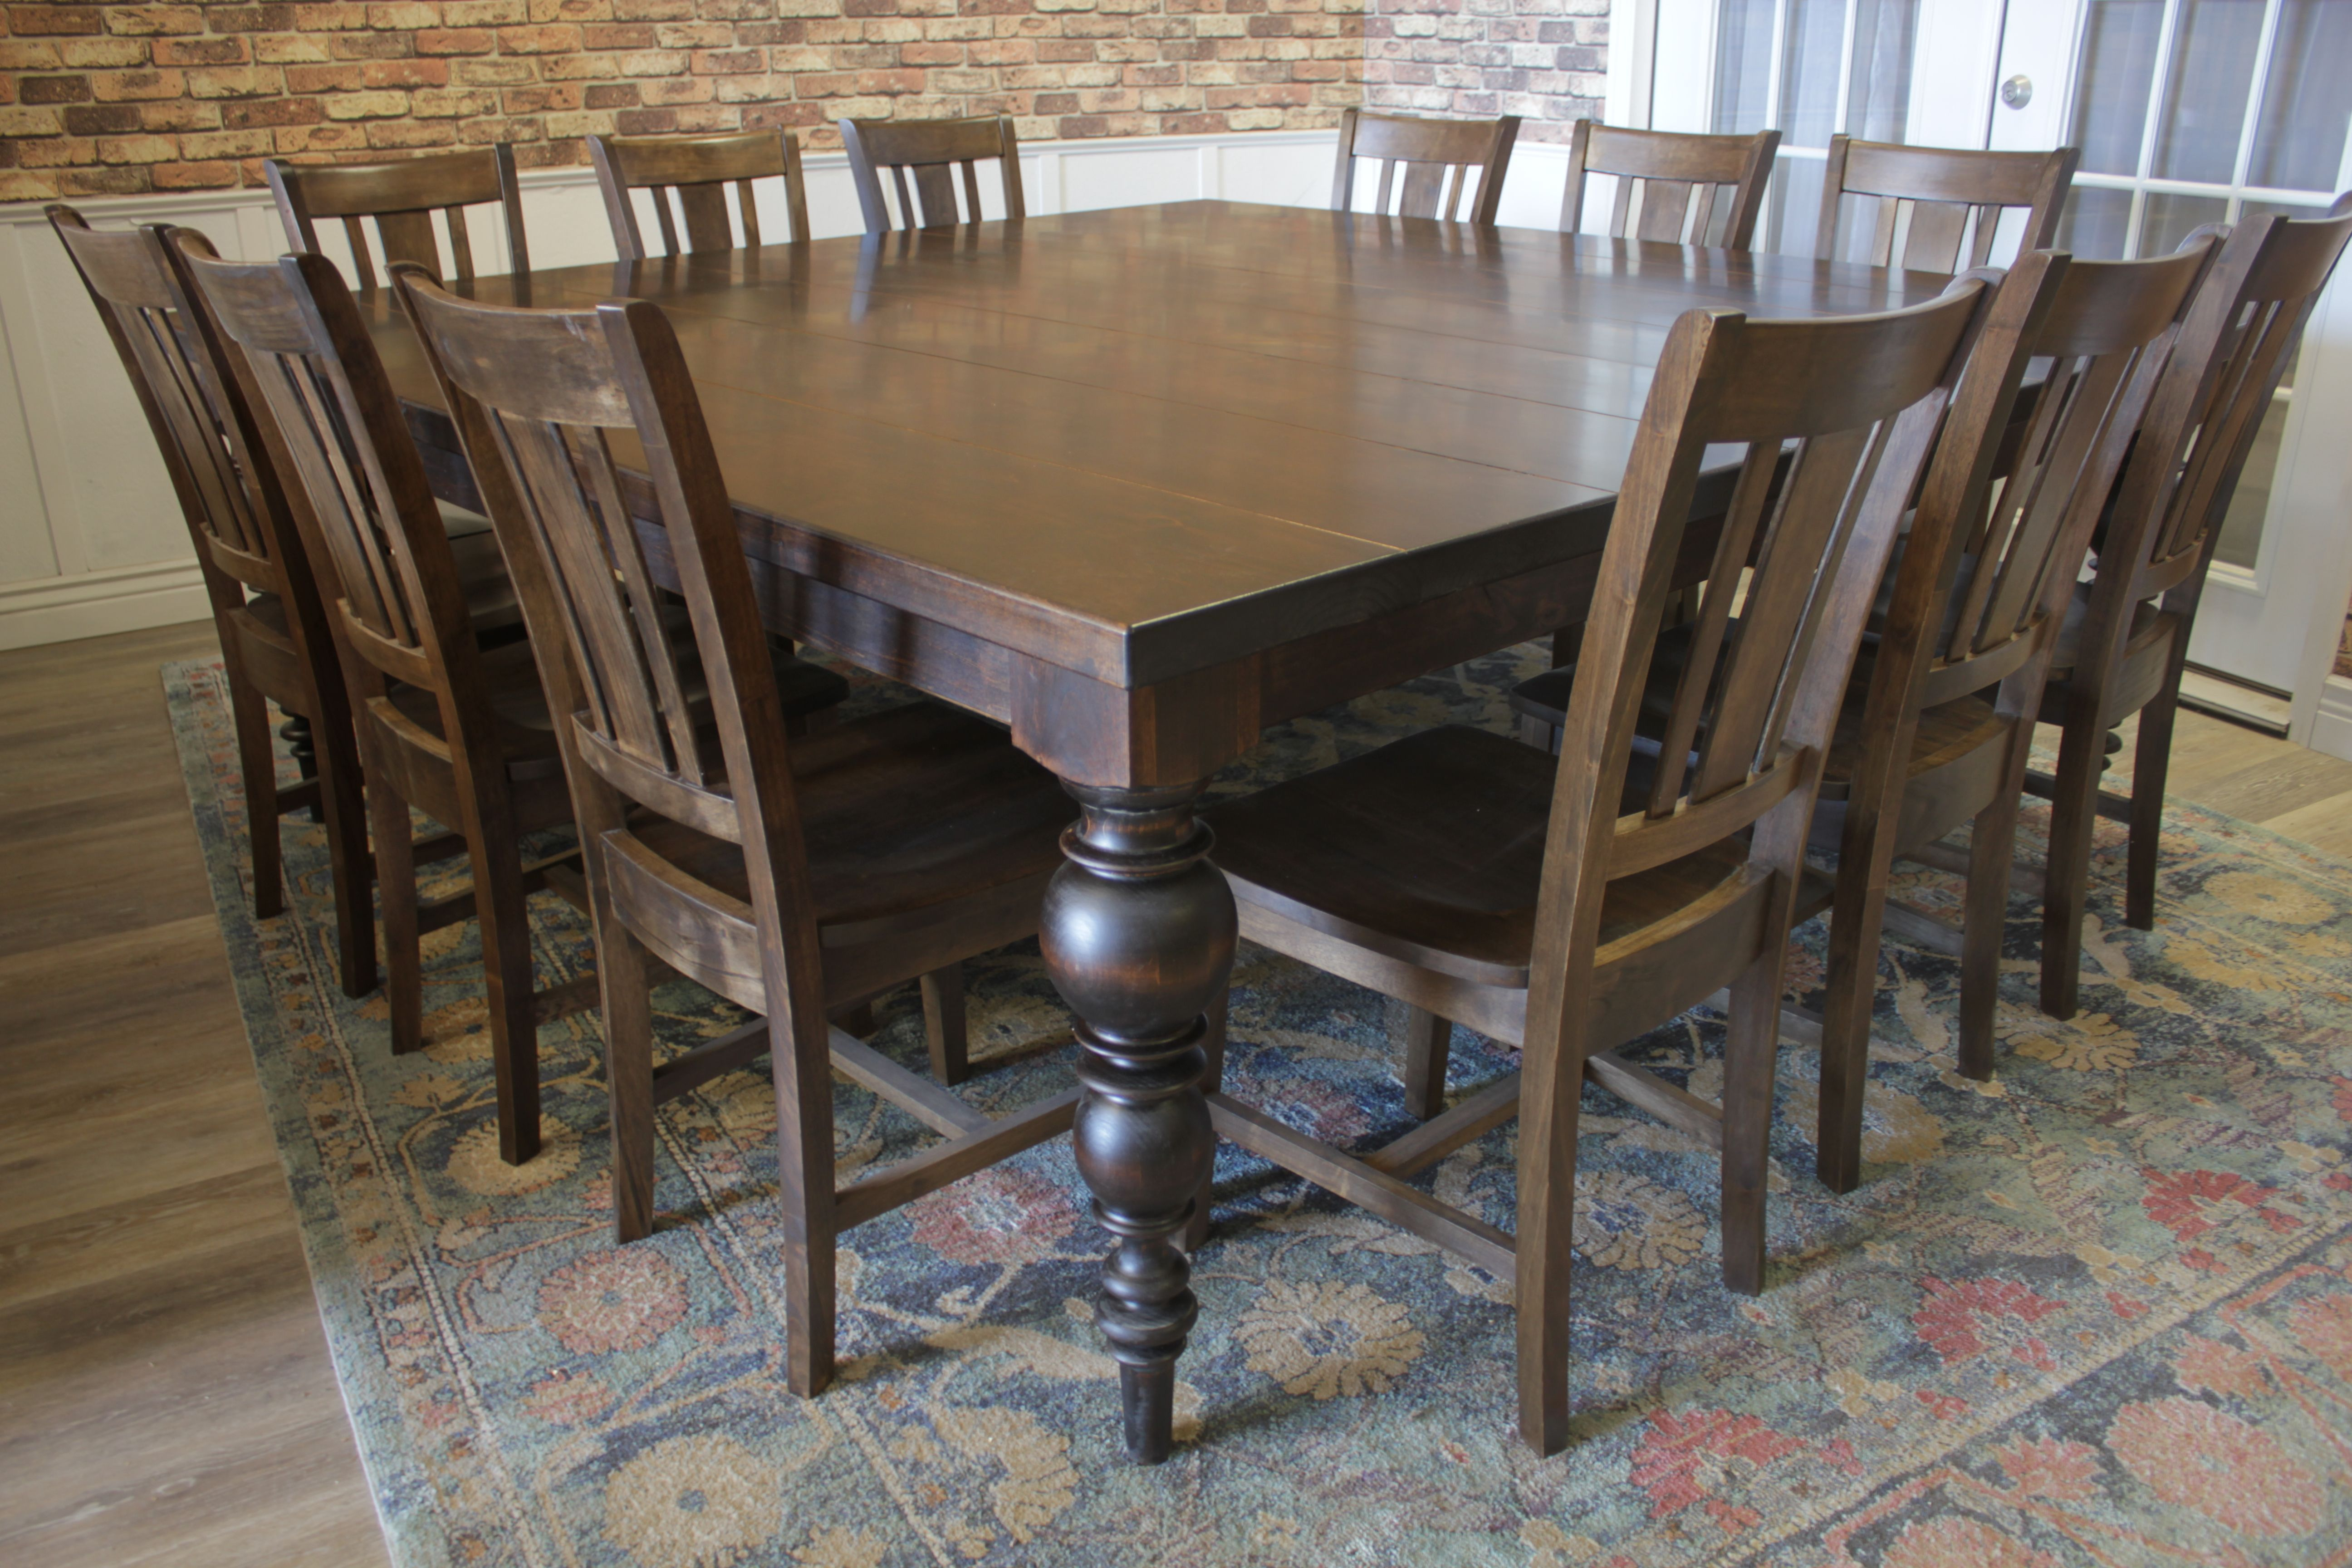 This Large Square Dining Table For 12 Makes Entertaining Friends And Family Look Effortless Gather 12 Square Dining Tables Farmhouse Dining Table Table For 12